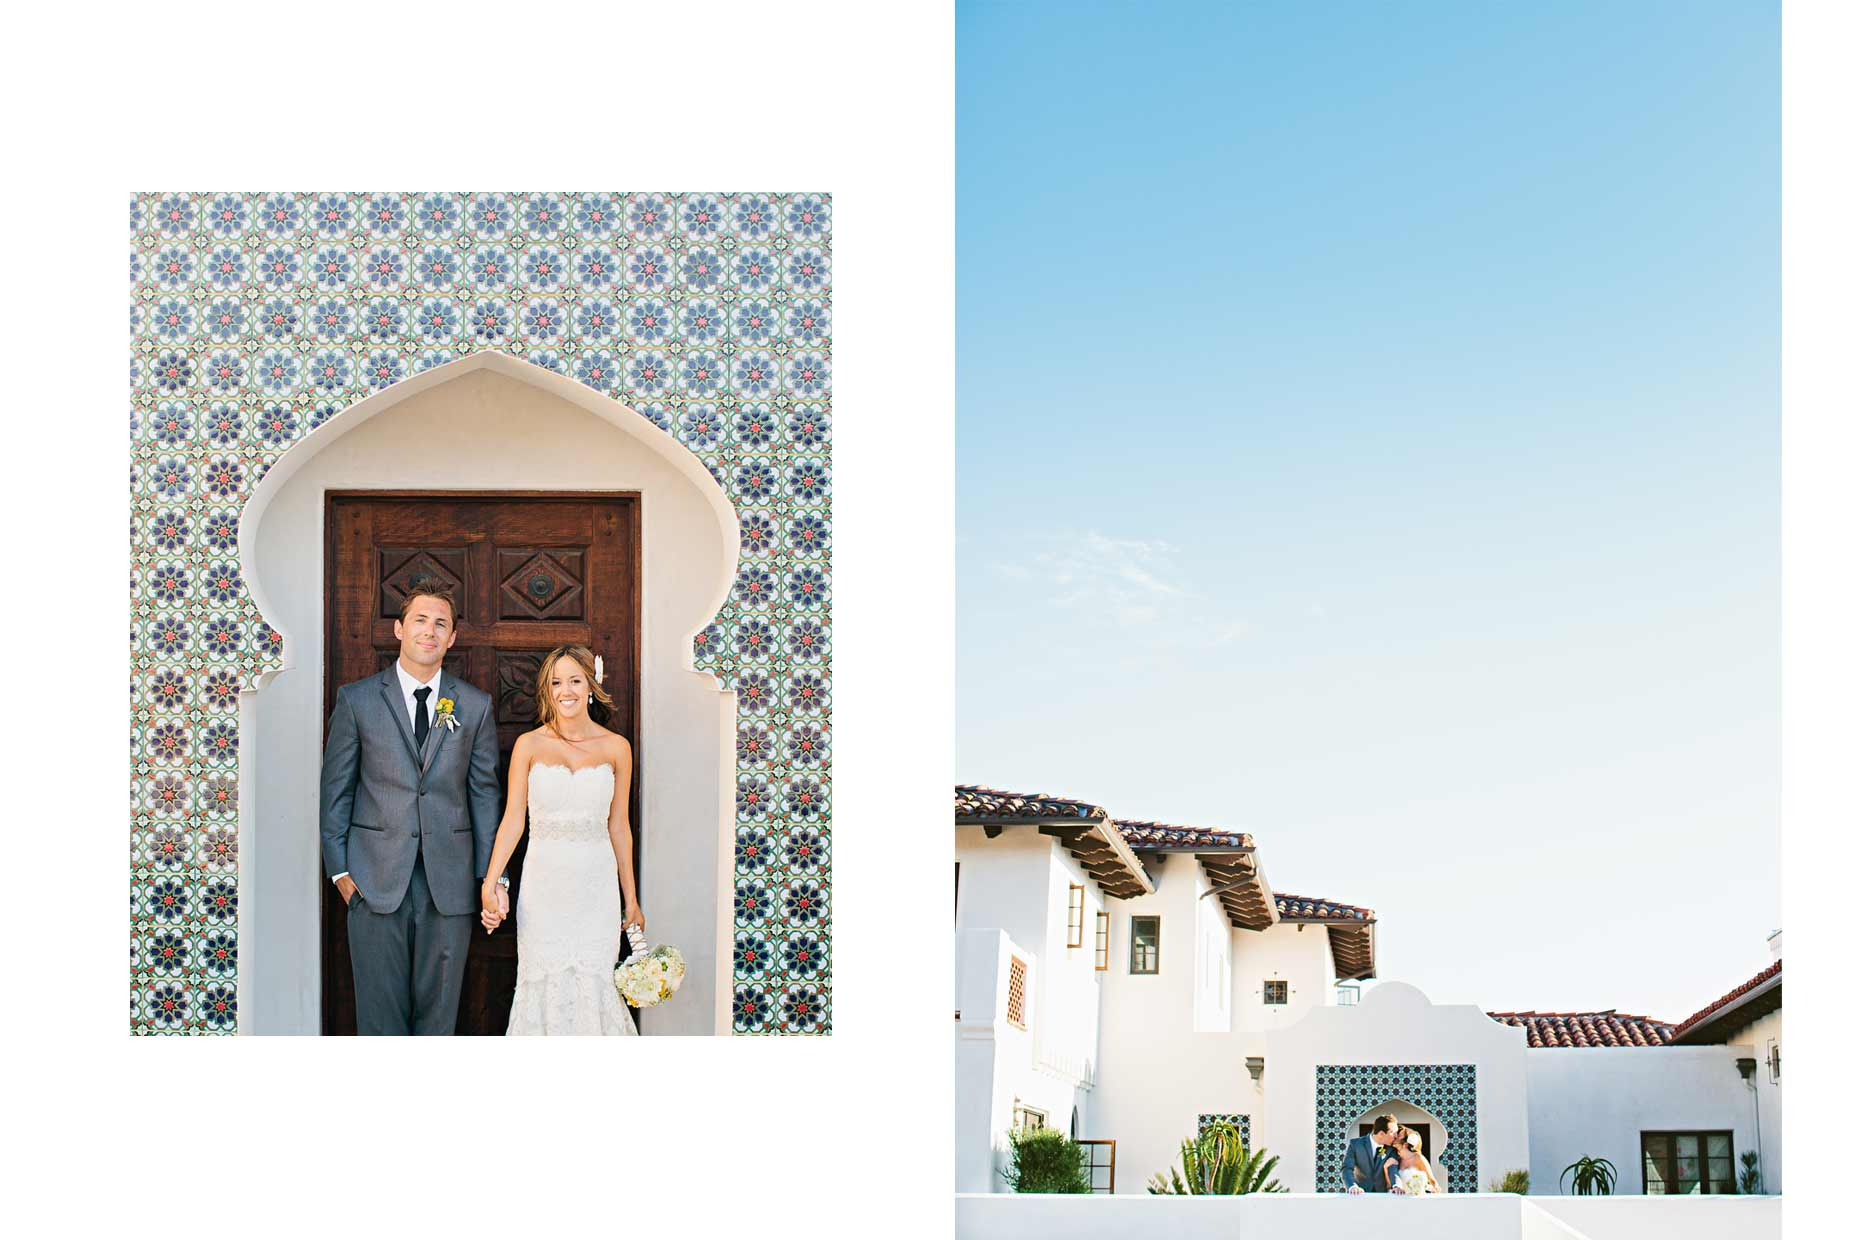 best creative wedding photographers in malibu-Malibu-Destination-Wedding_Pierre-olivier-Photography-